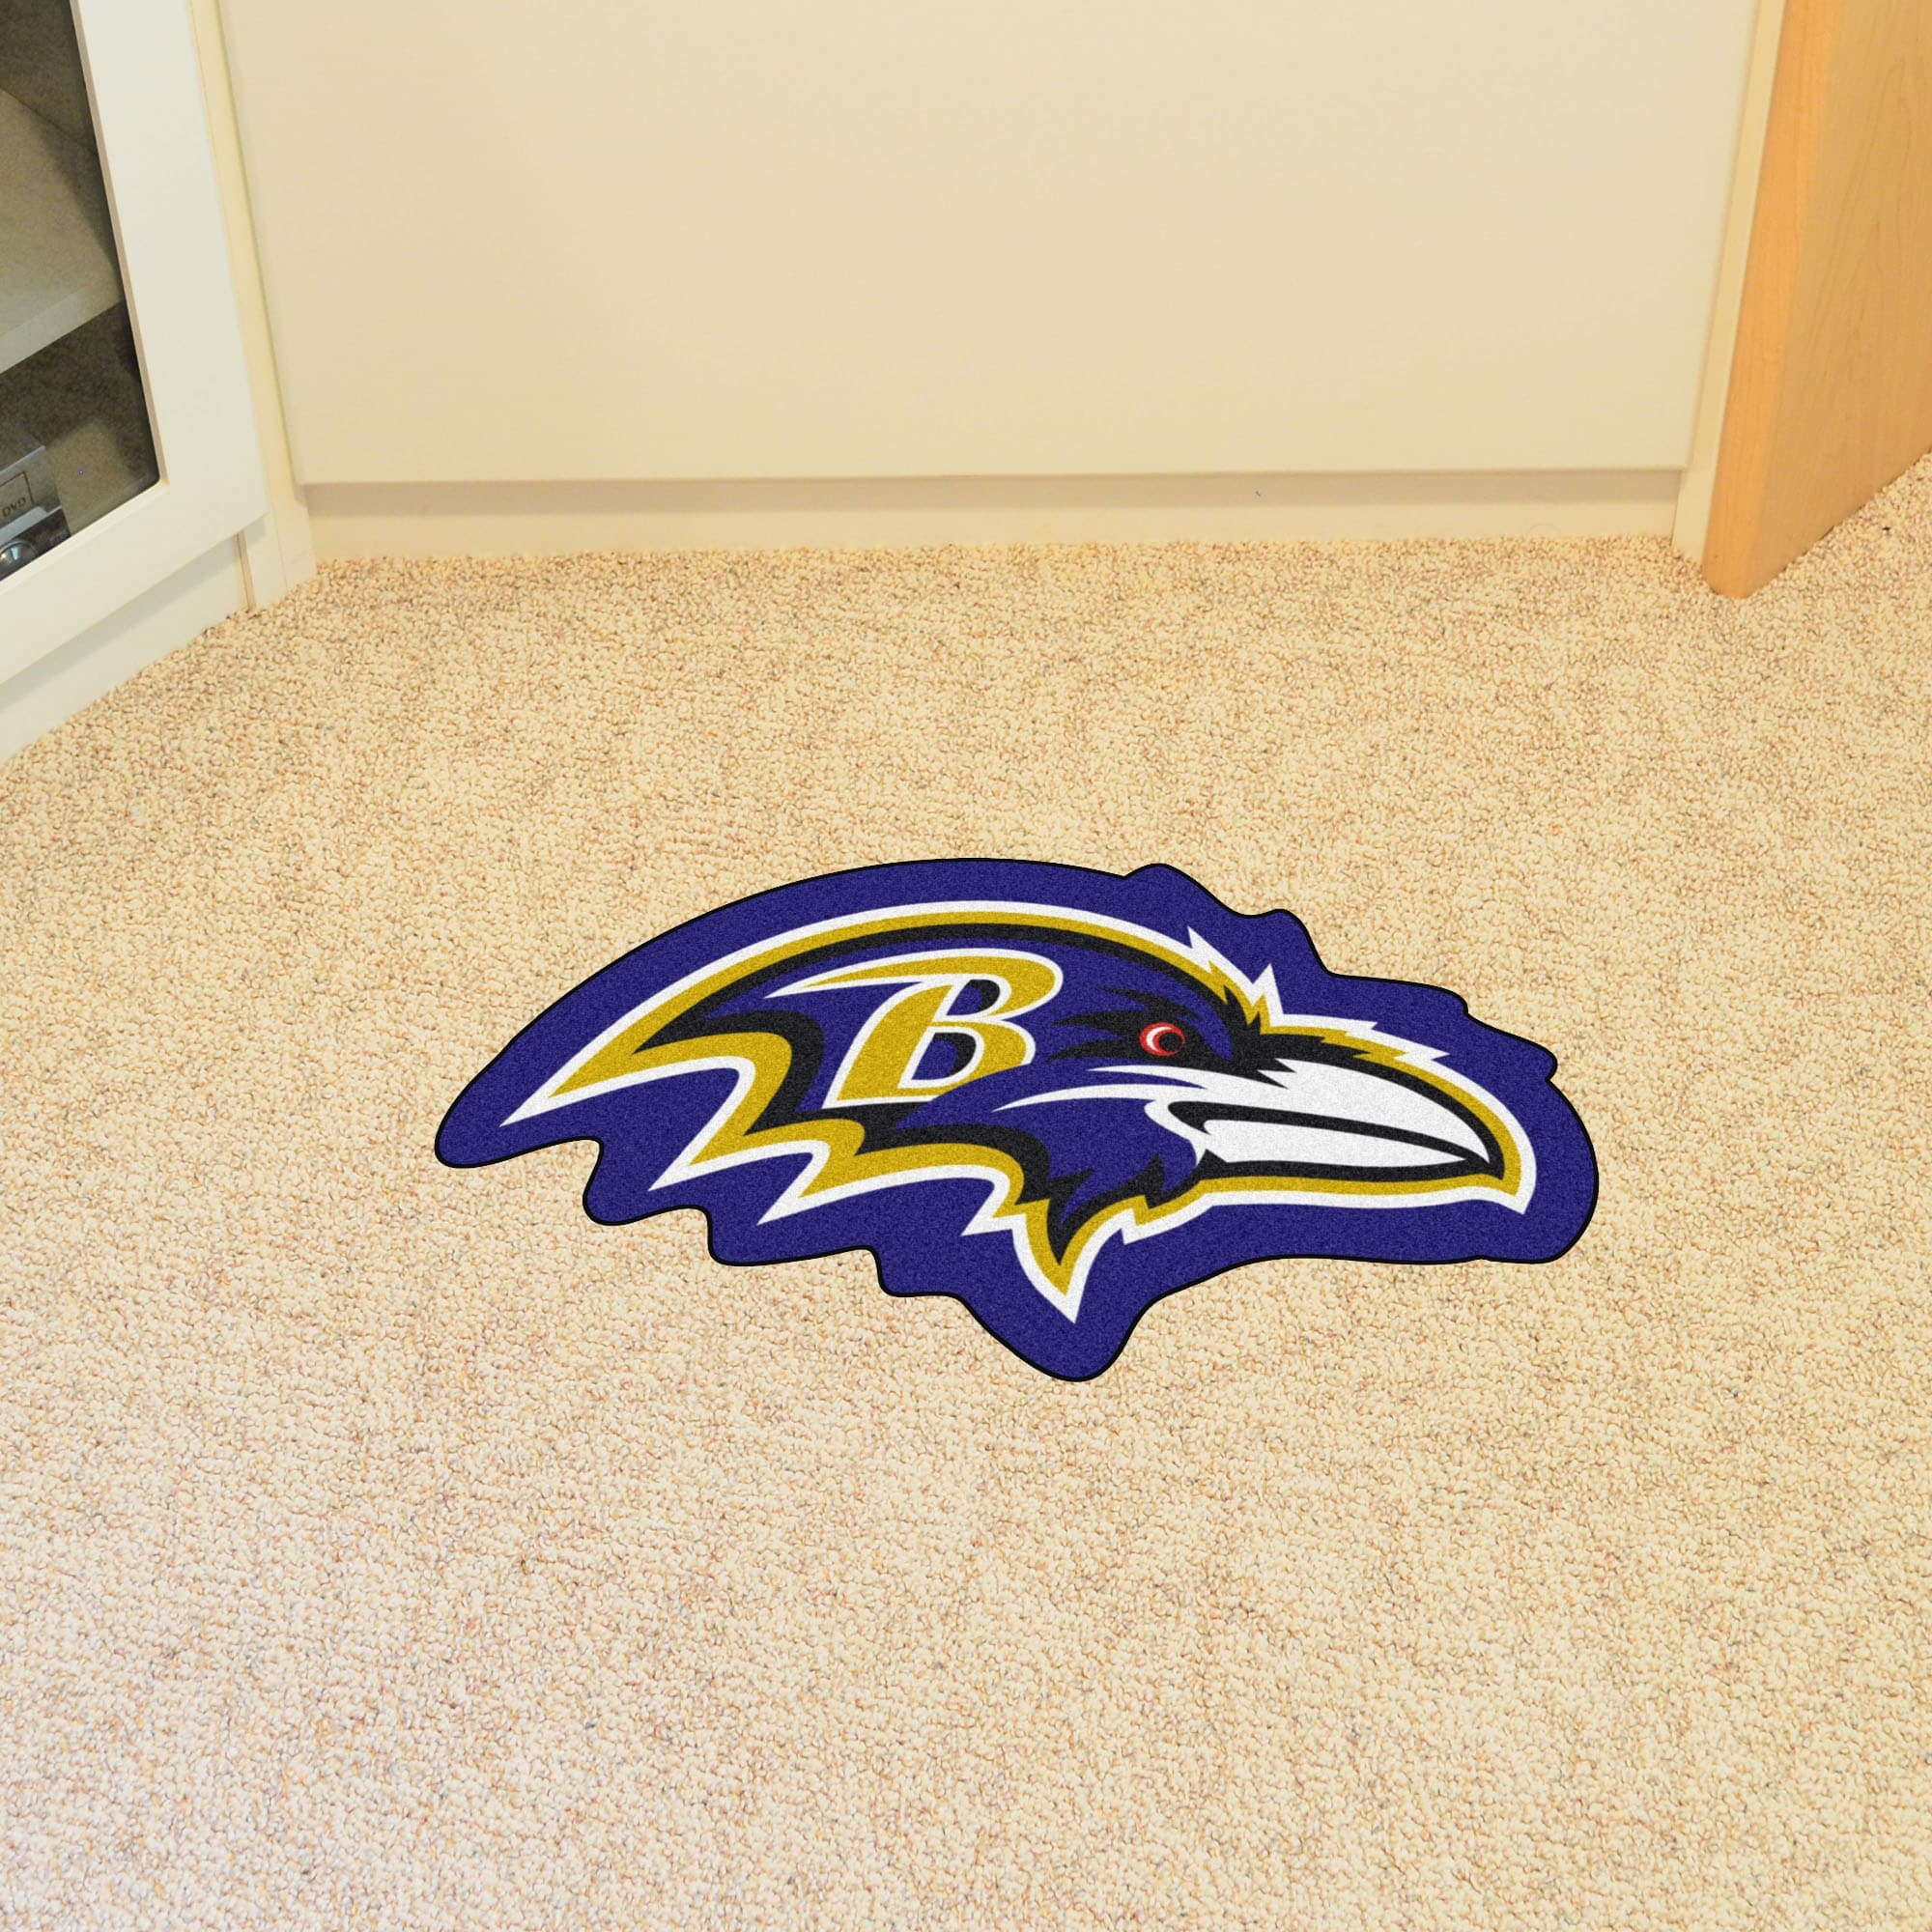 333efee8 NFL Baltimore Ravens Mascot Novelty Logo Shaped Area Rug - N/A